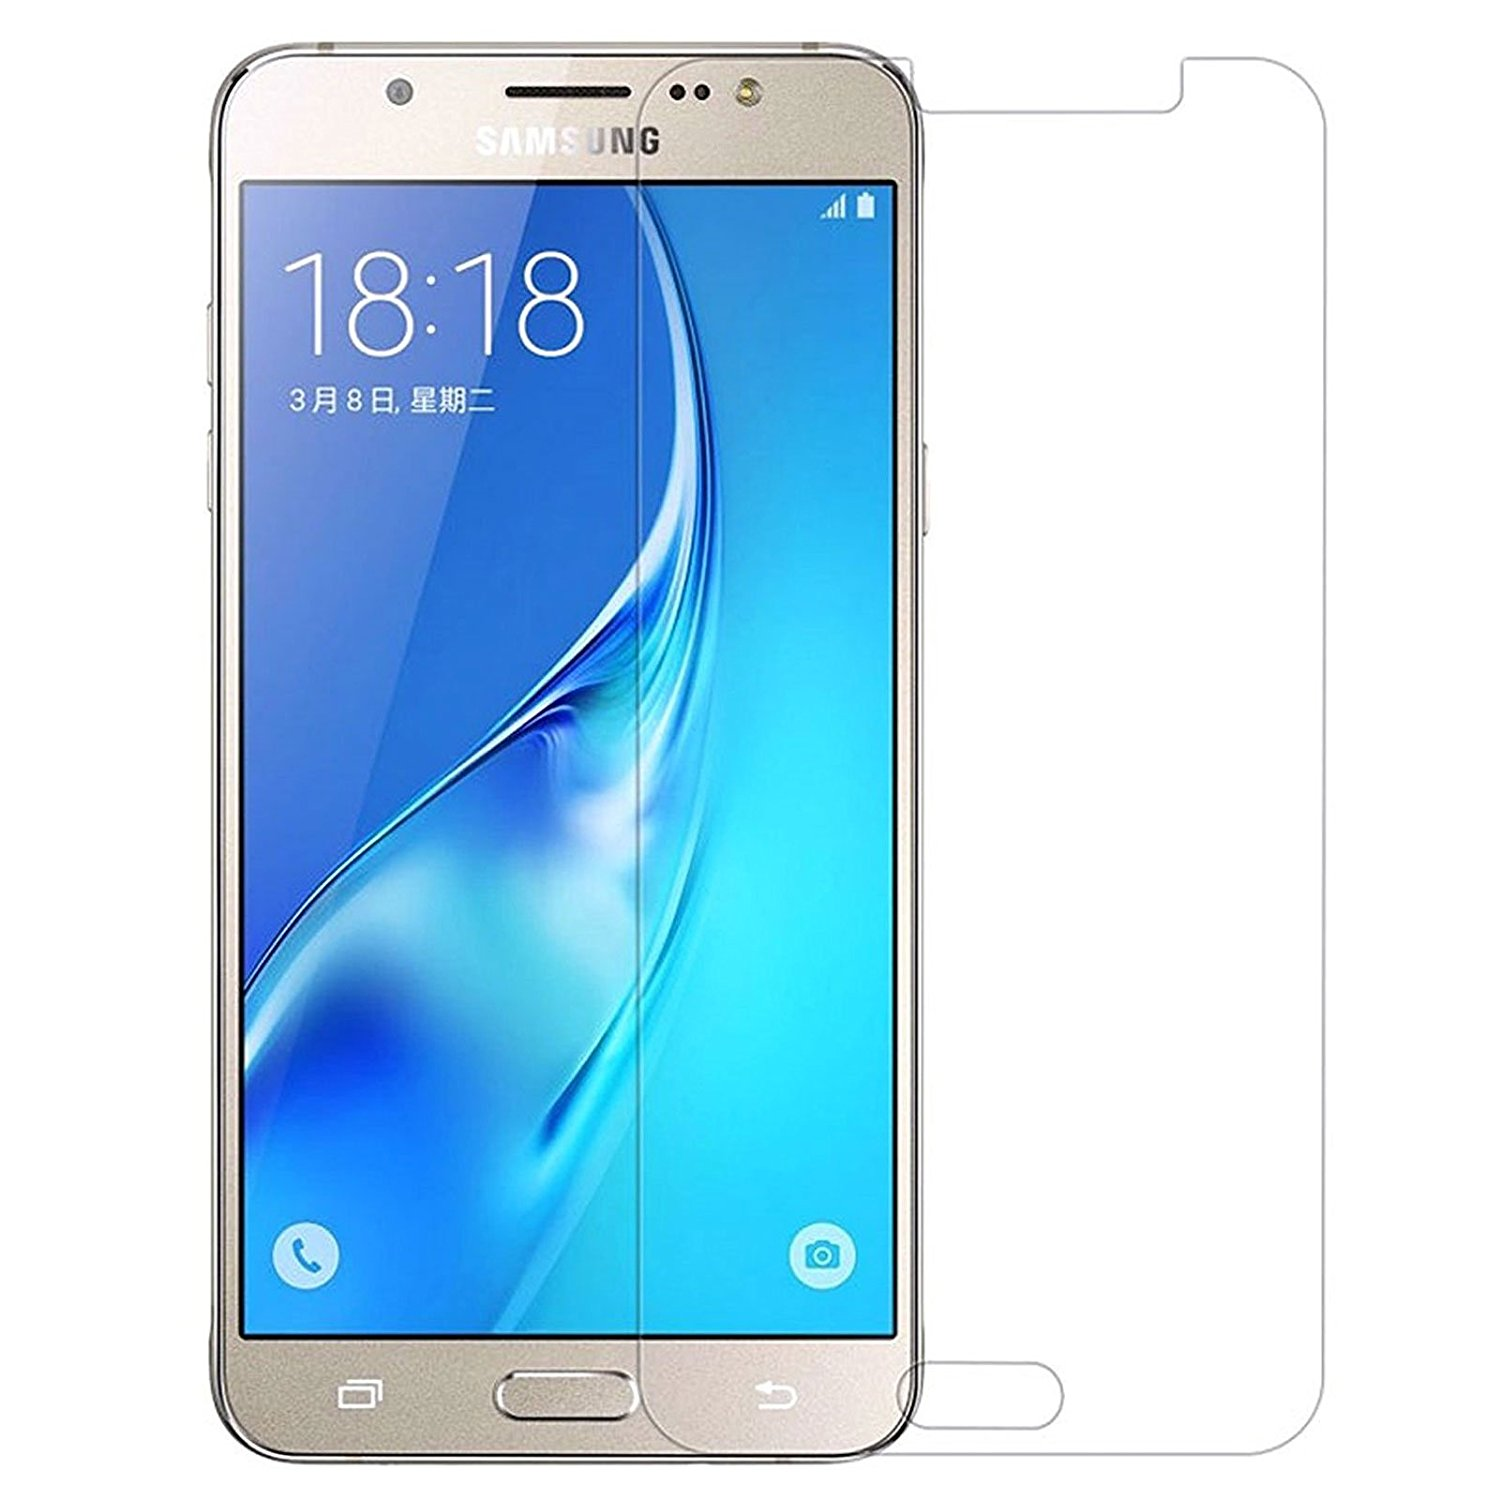 binghub Bing Hub Galaxy J7 (2016) Tempered Glass, For J7 Mobile Phone. Best Quality Product .